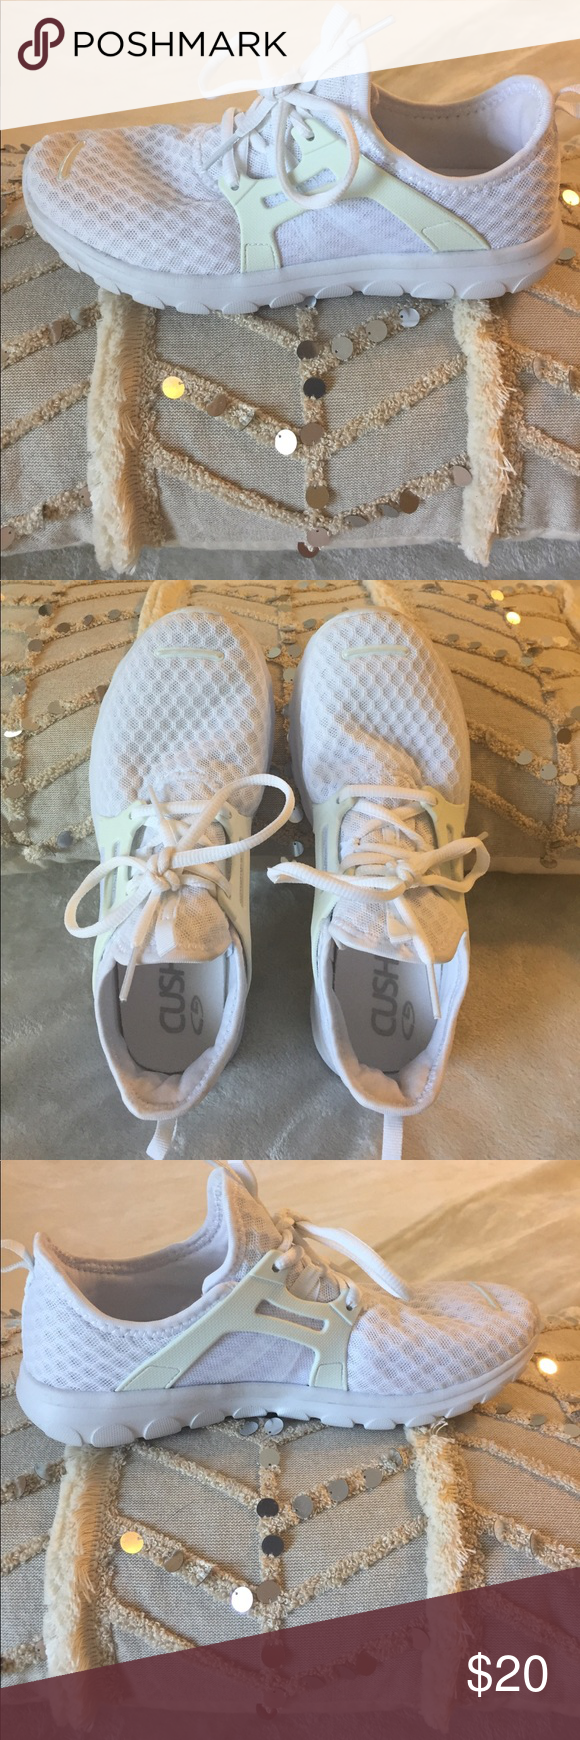 696514d785e White cushion fit shoes Brand new white cushion fit shoes from target.  Women s size 6. Super comfy and super cute Shoes Sneakers